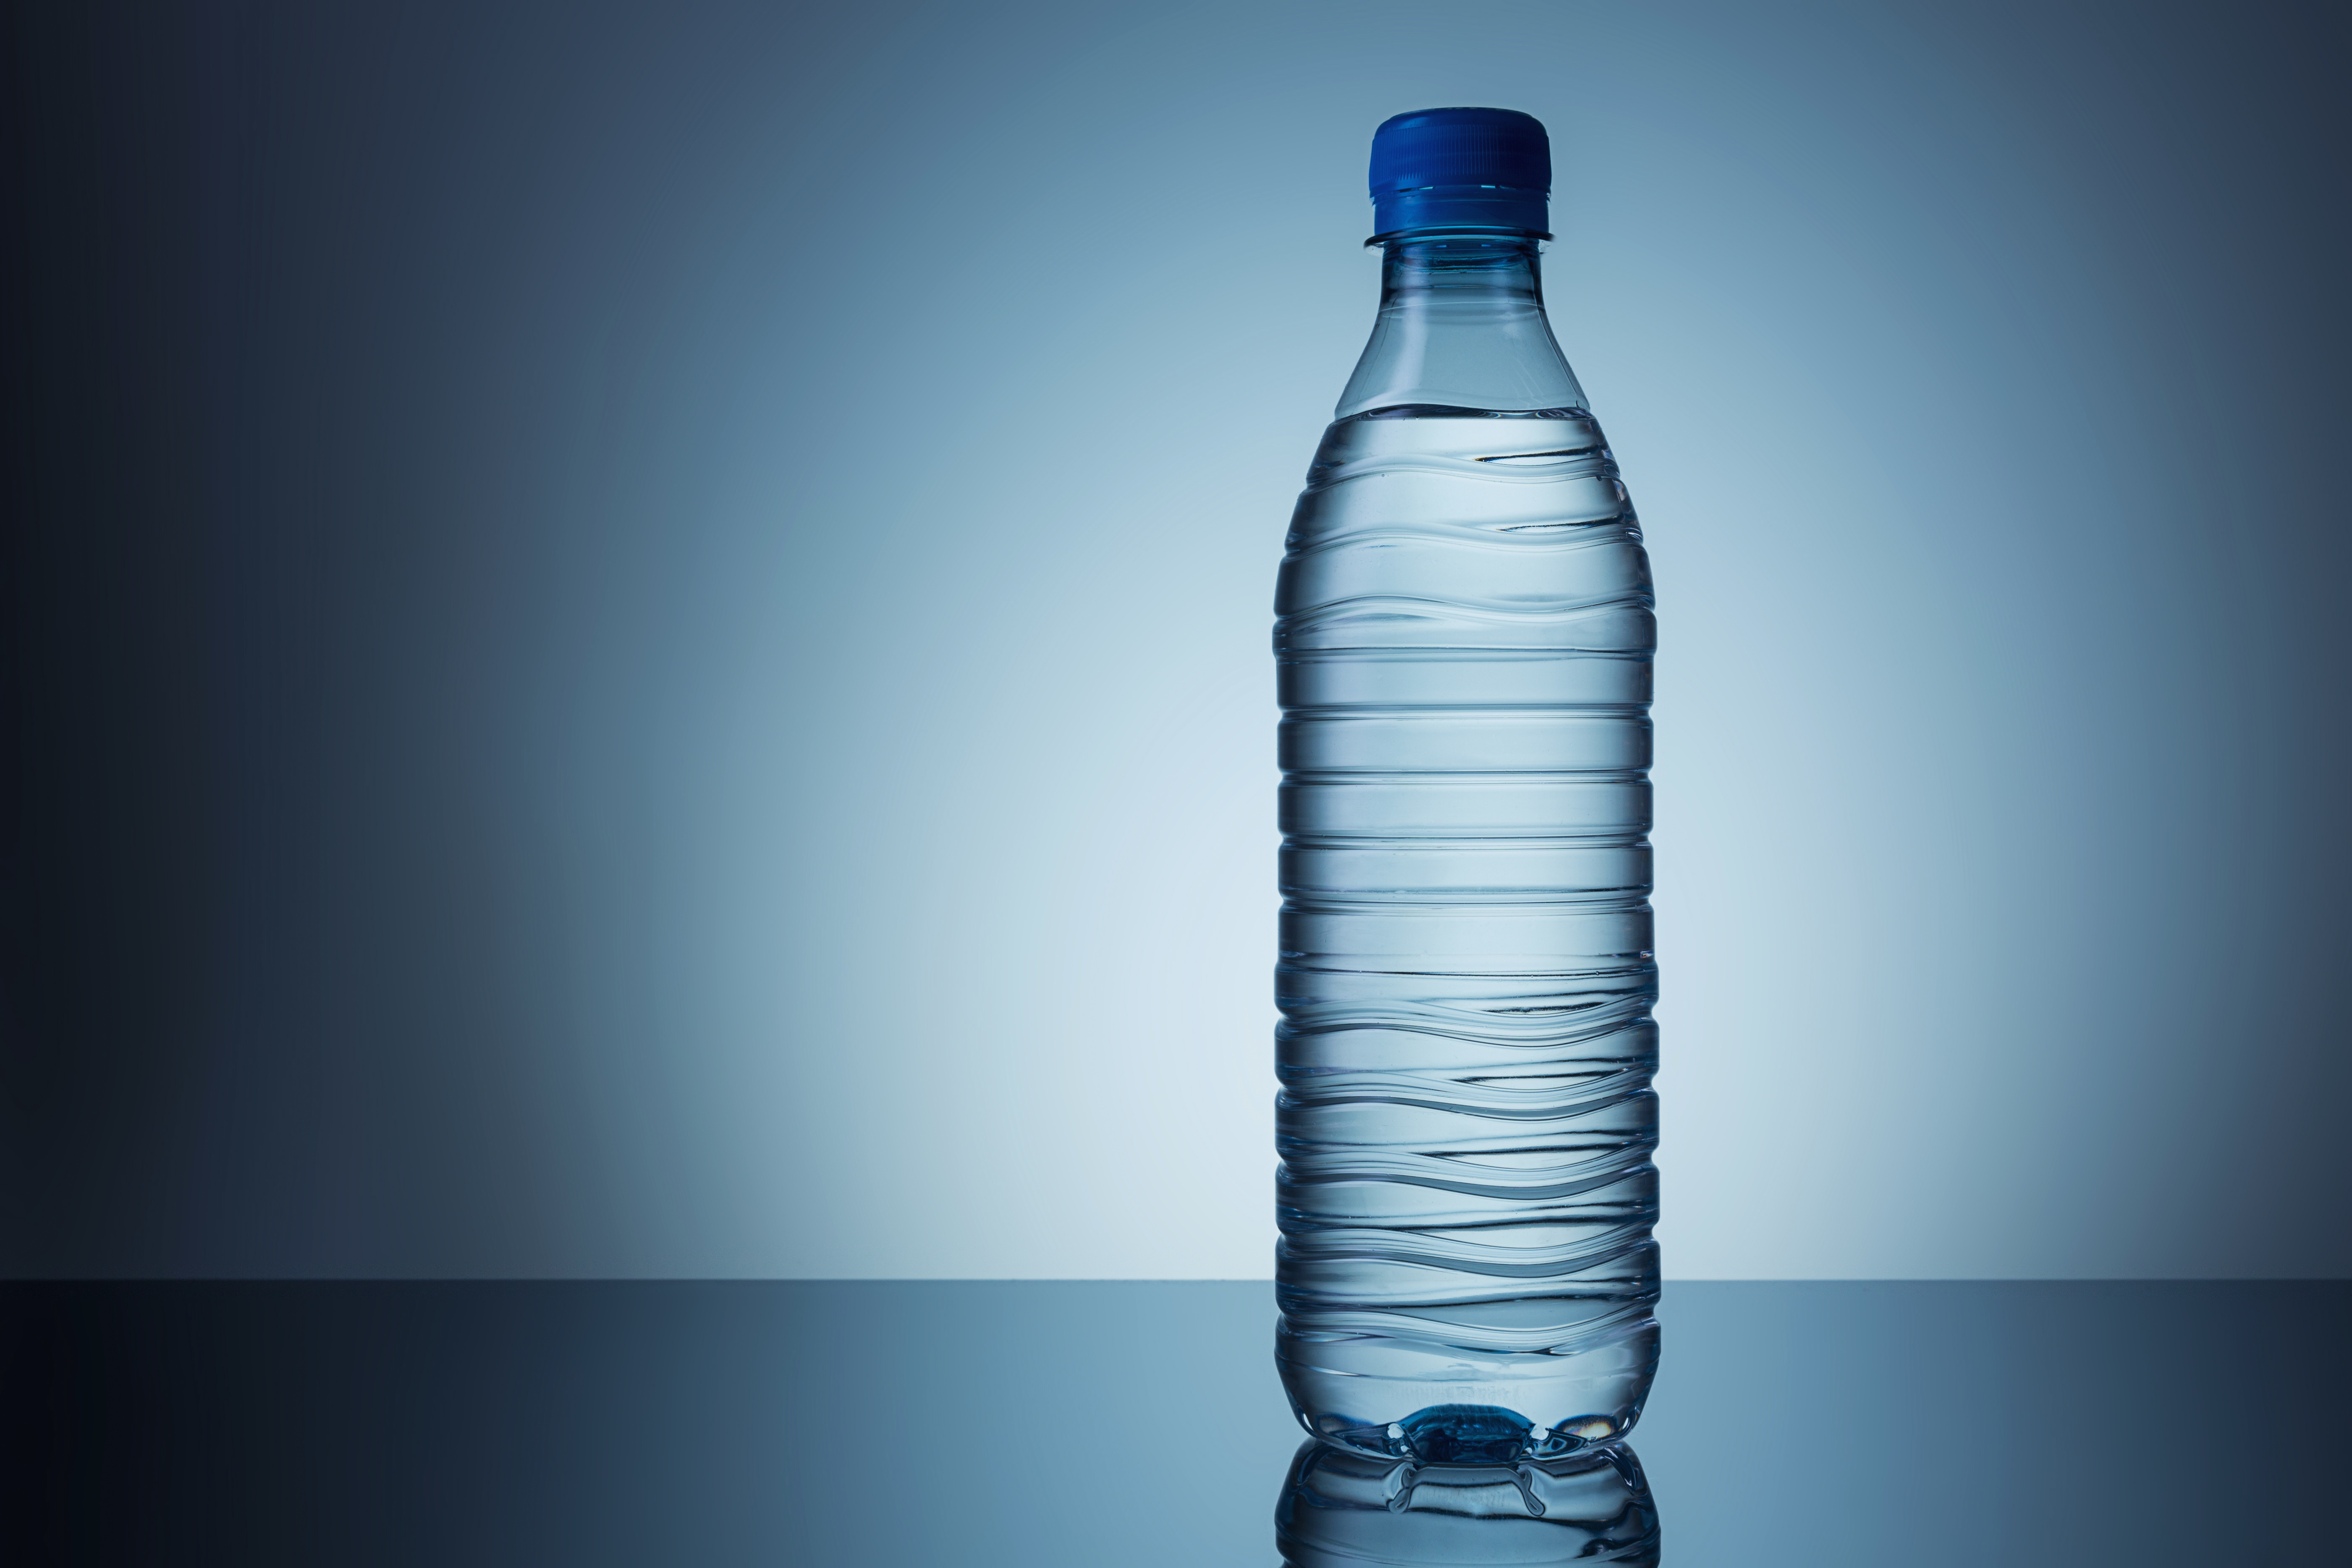 Close-Up Of Water Bottle Against Gray Background